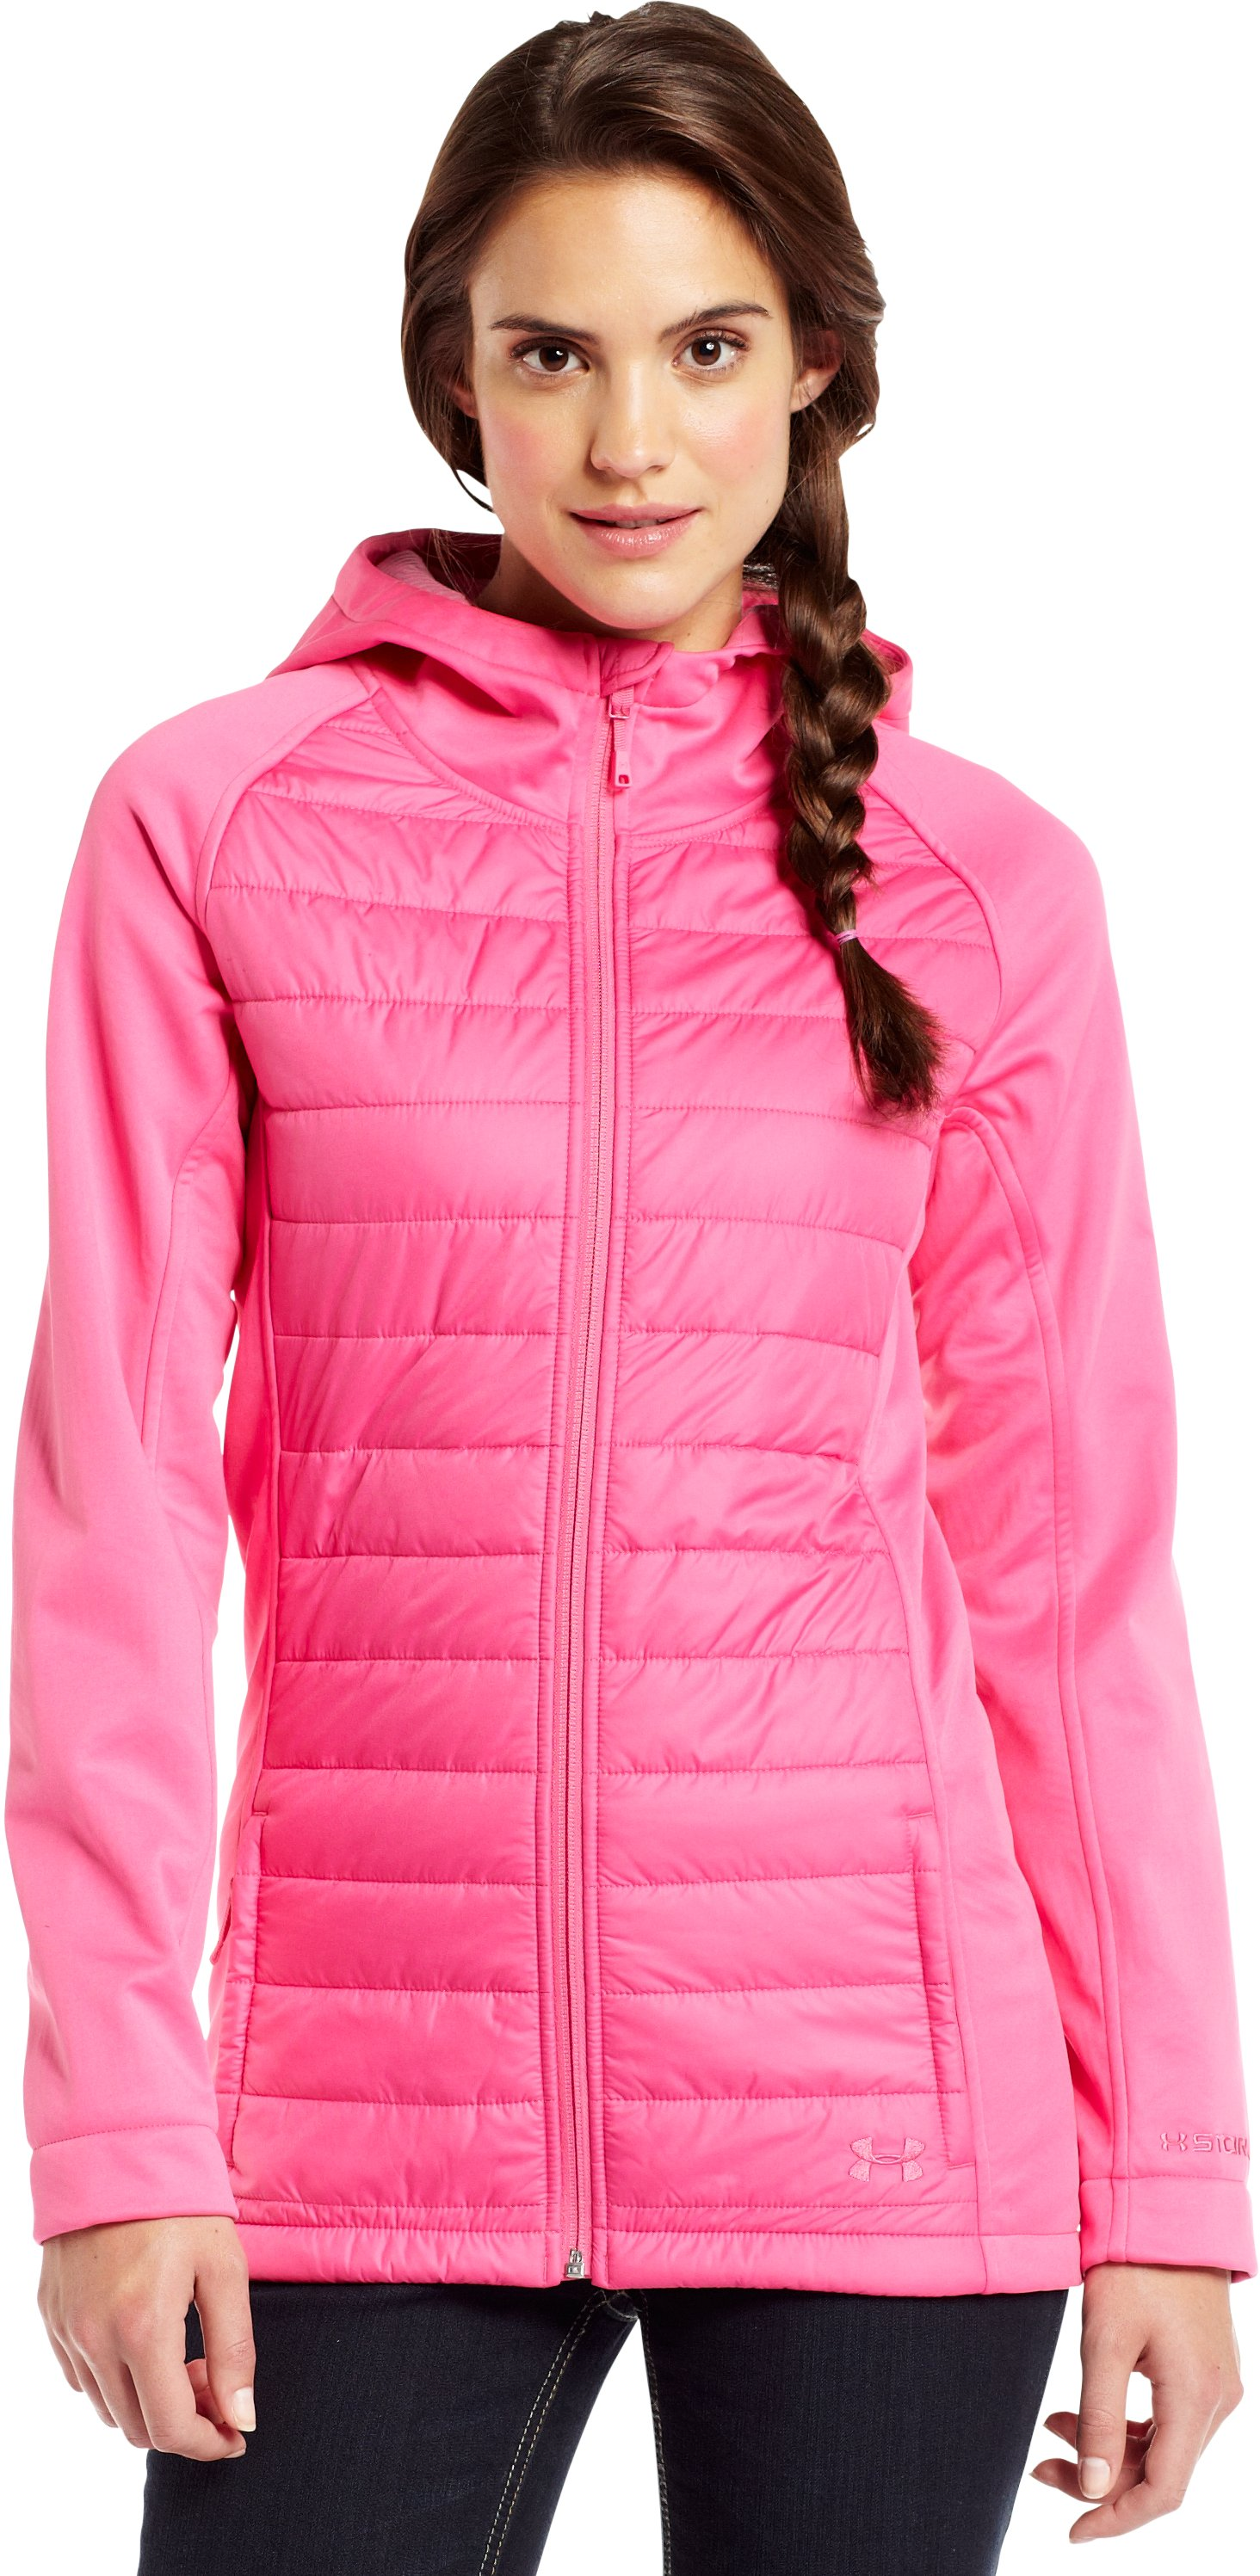 Women's ColdGear® Infrared Werewolf Jacket, Lollipop, Front